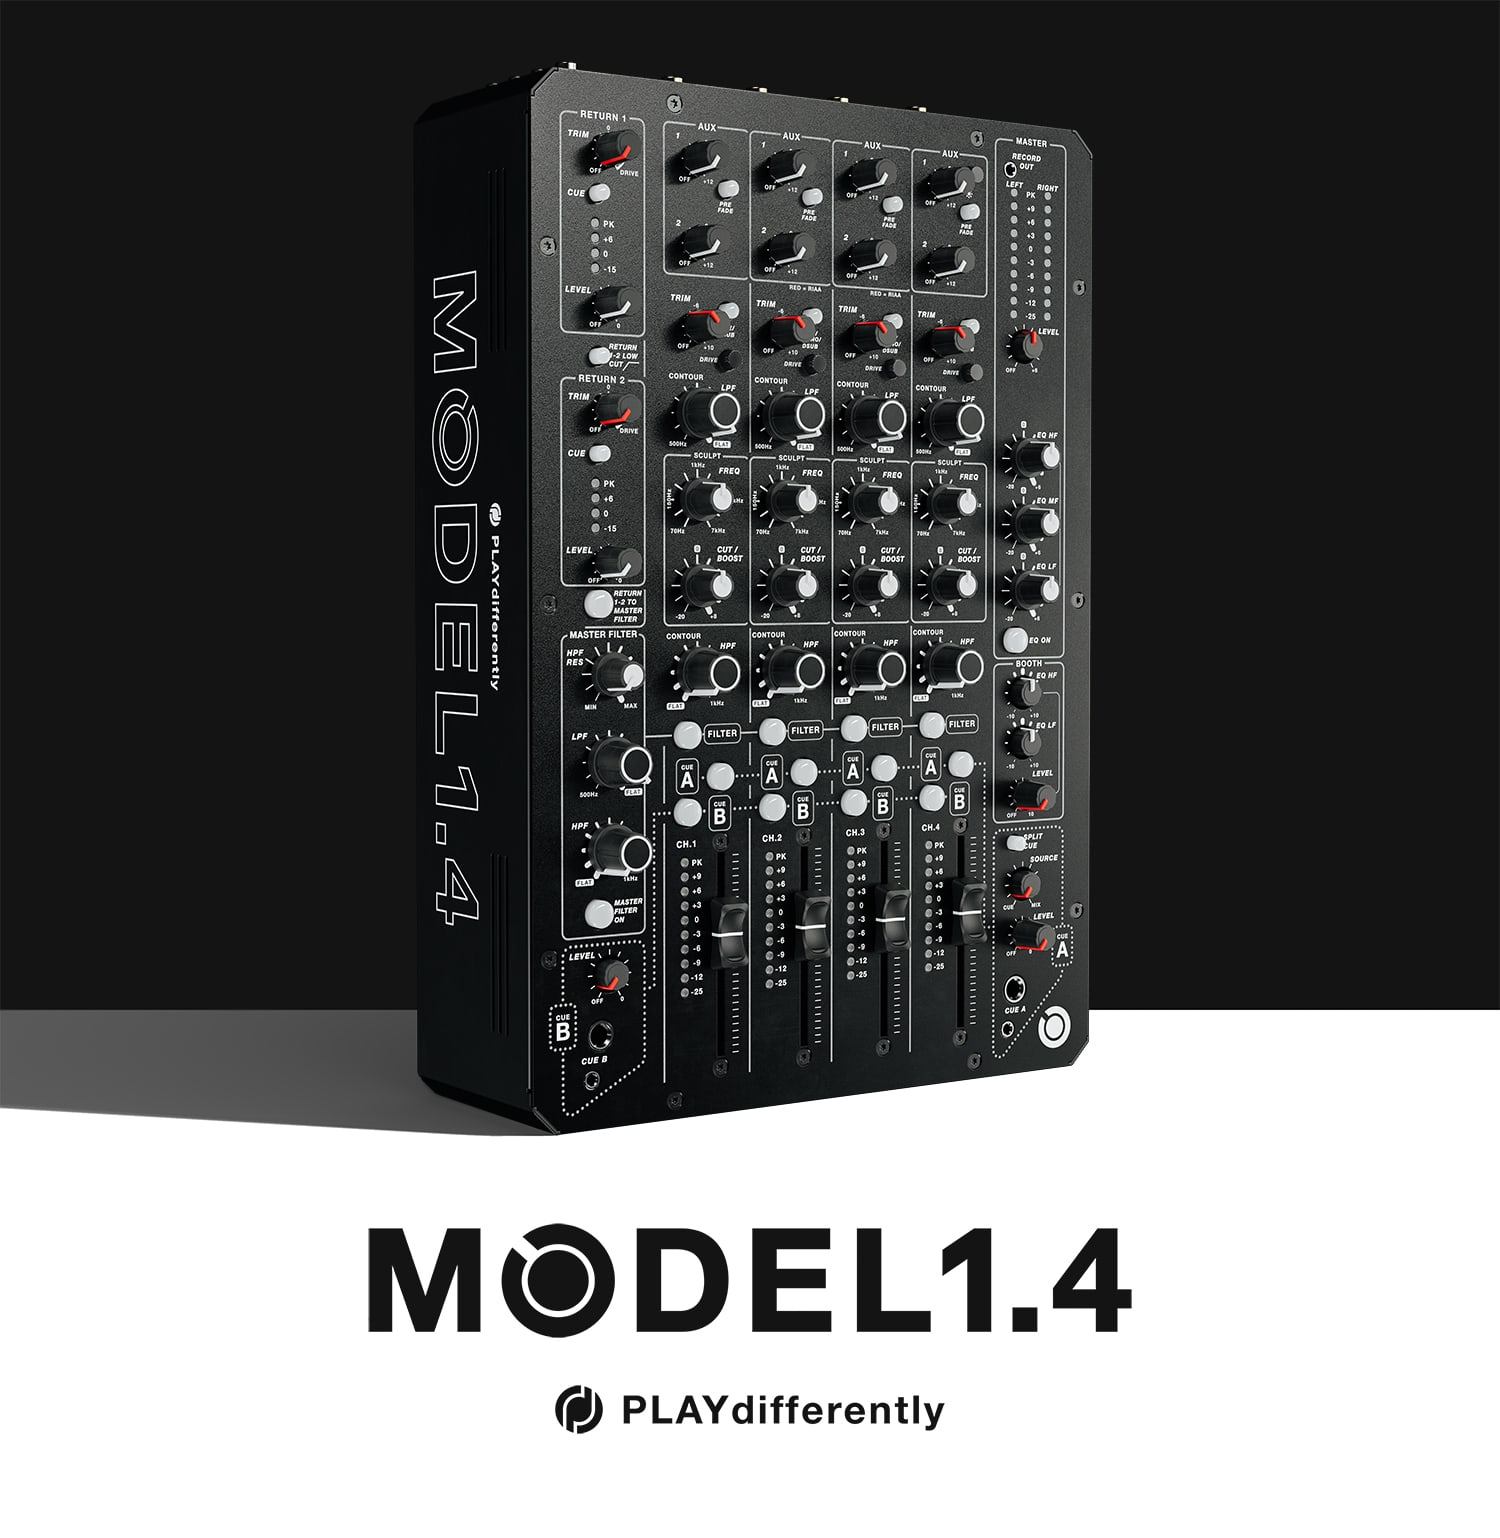 PLAYdifferently Releases MODEL 1.4  - 4-Channel Analogue DJ Mixer | XLR